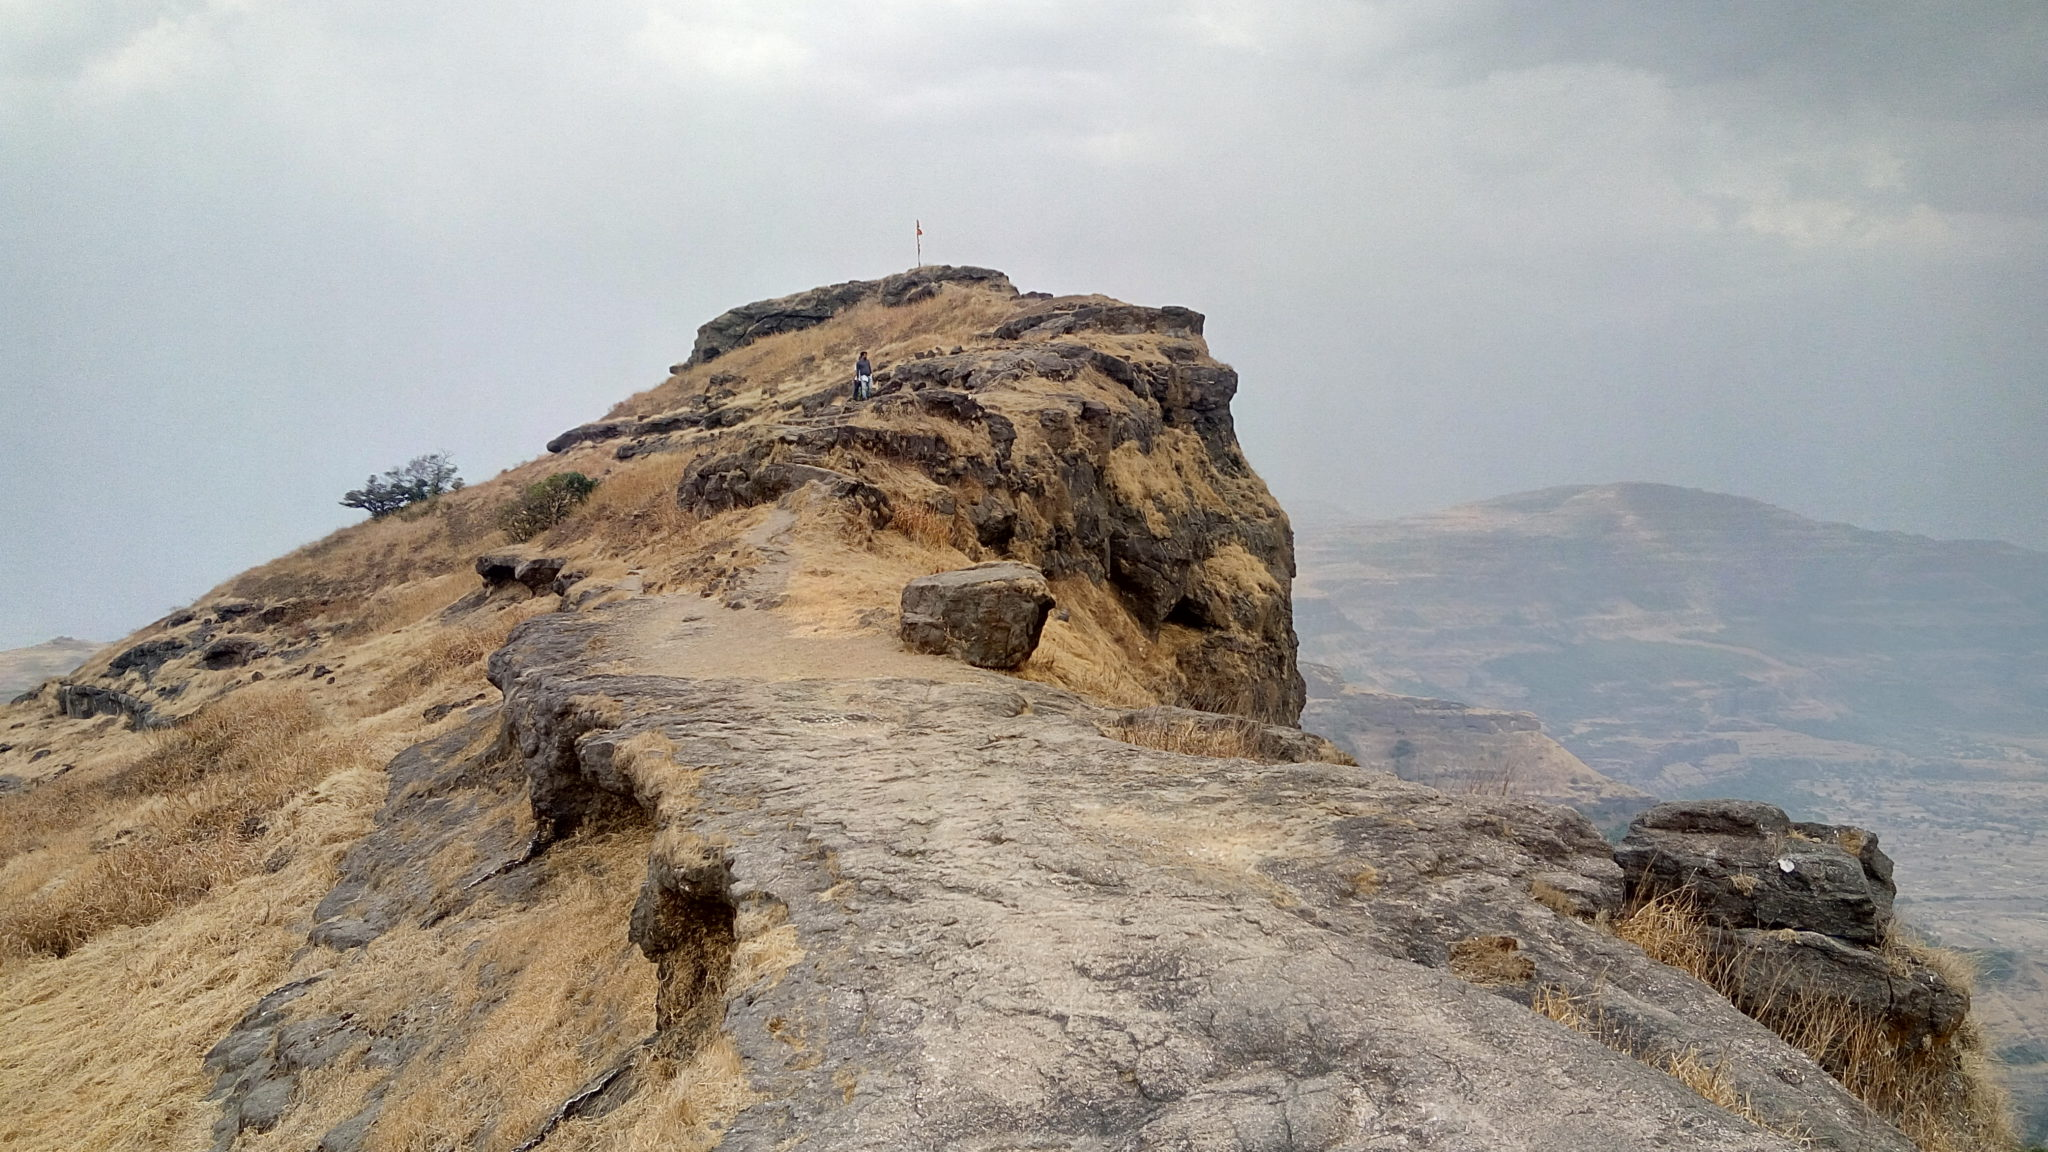 Trek to Harischandragad Fort and KonkanKada | Travel And Trekking